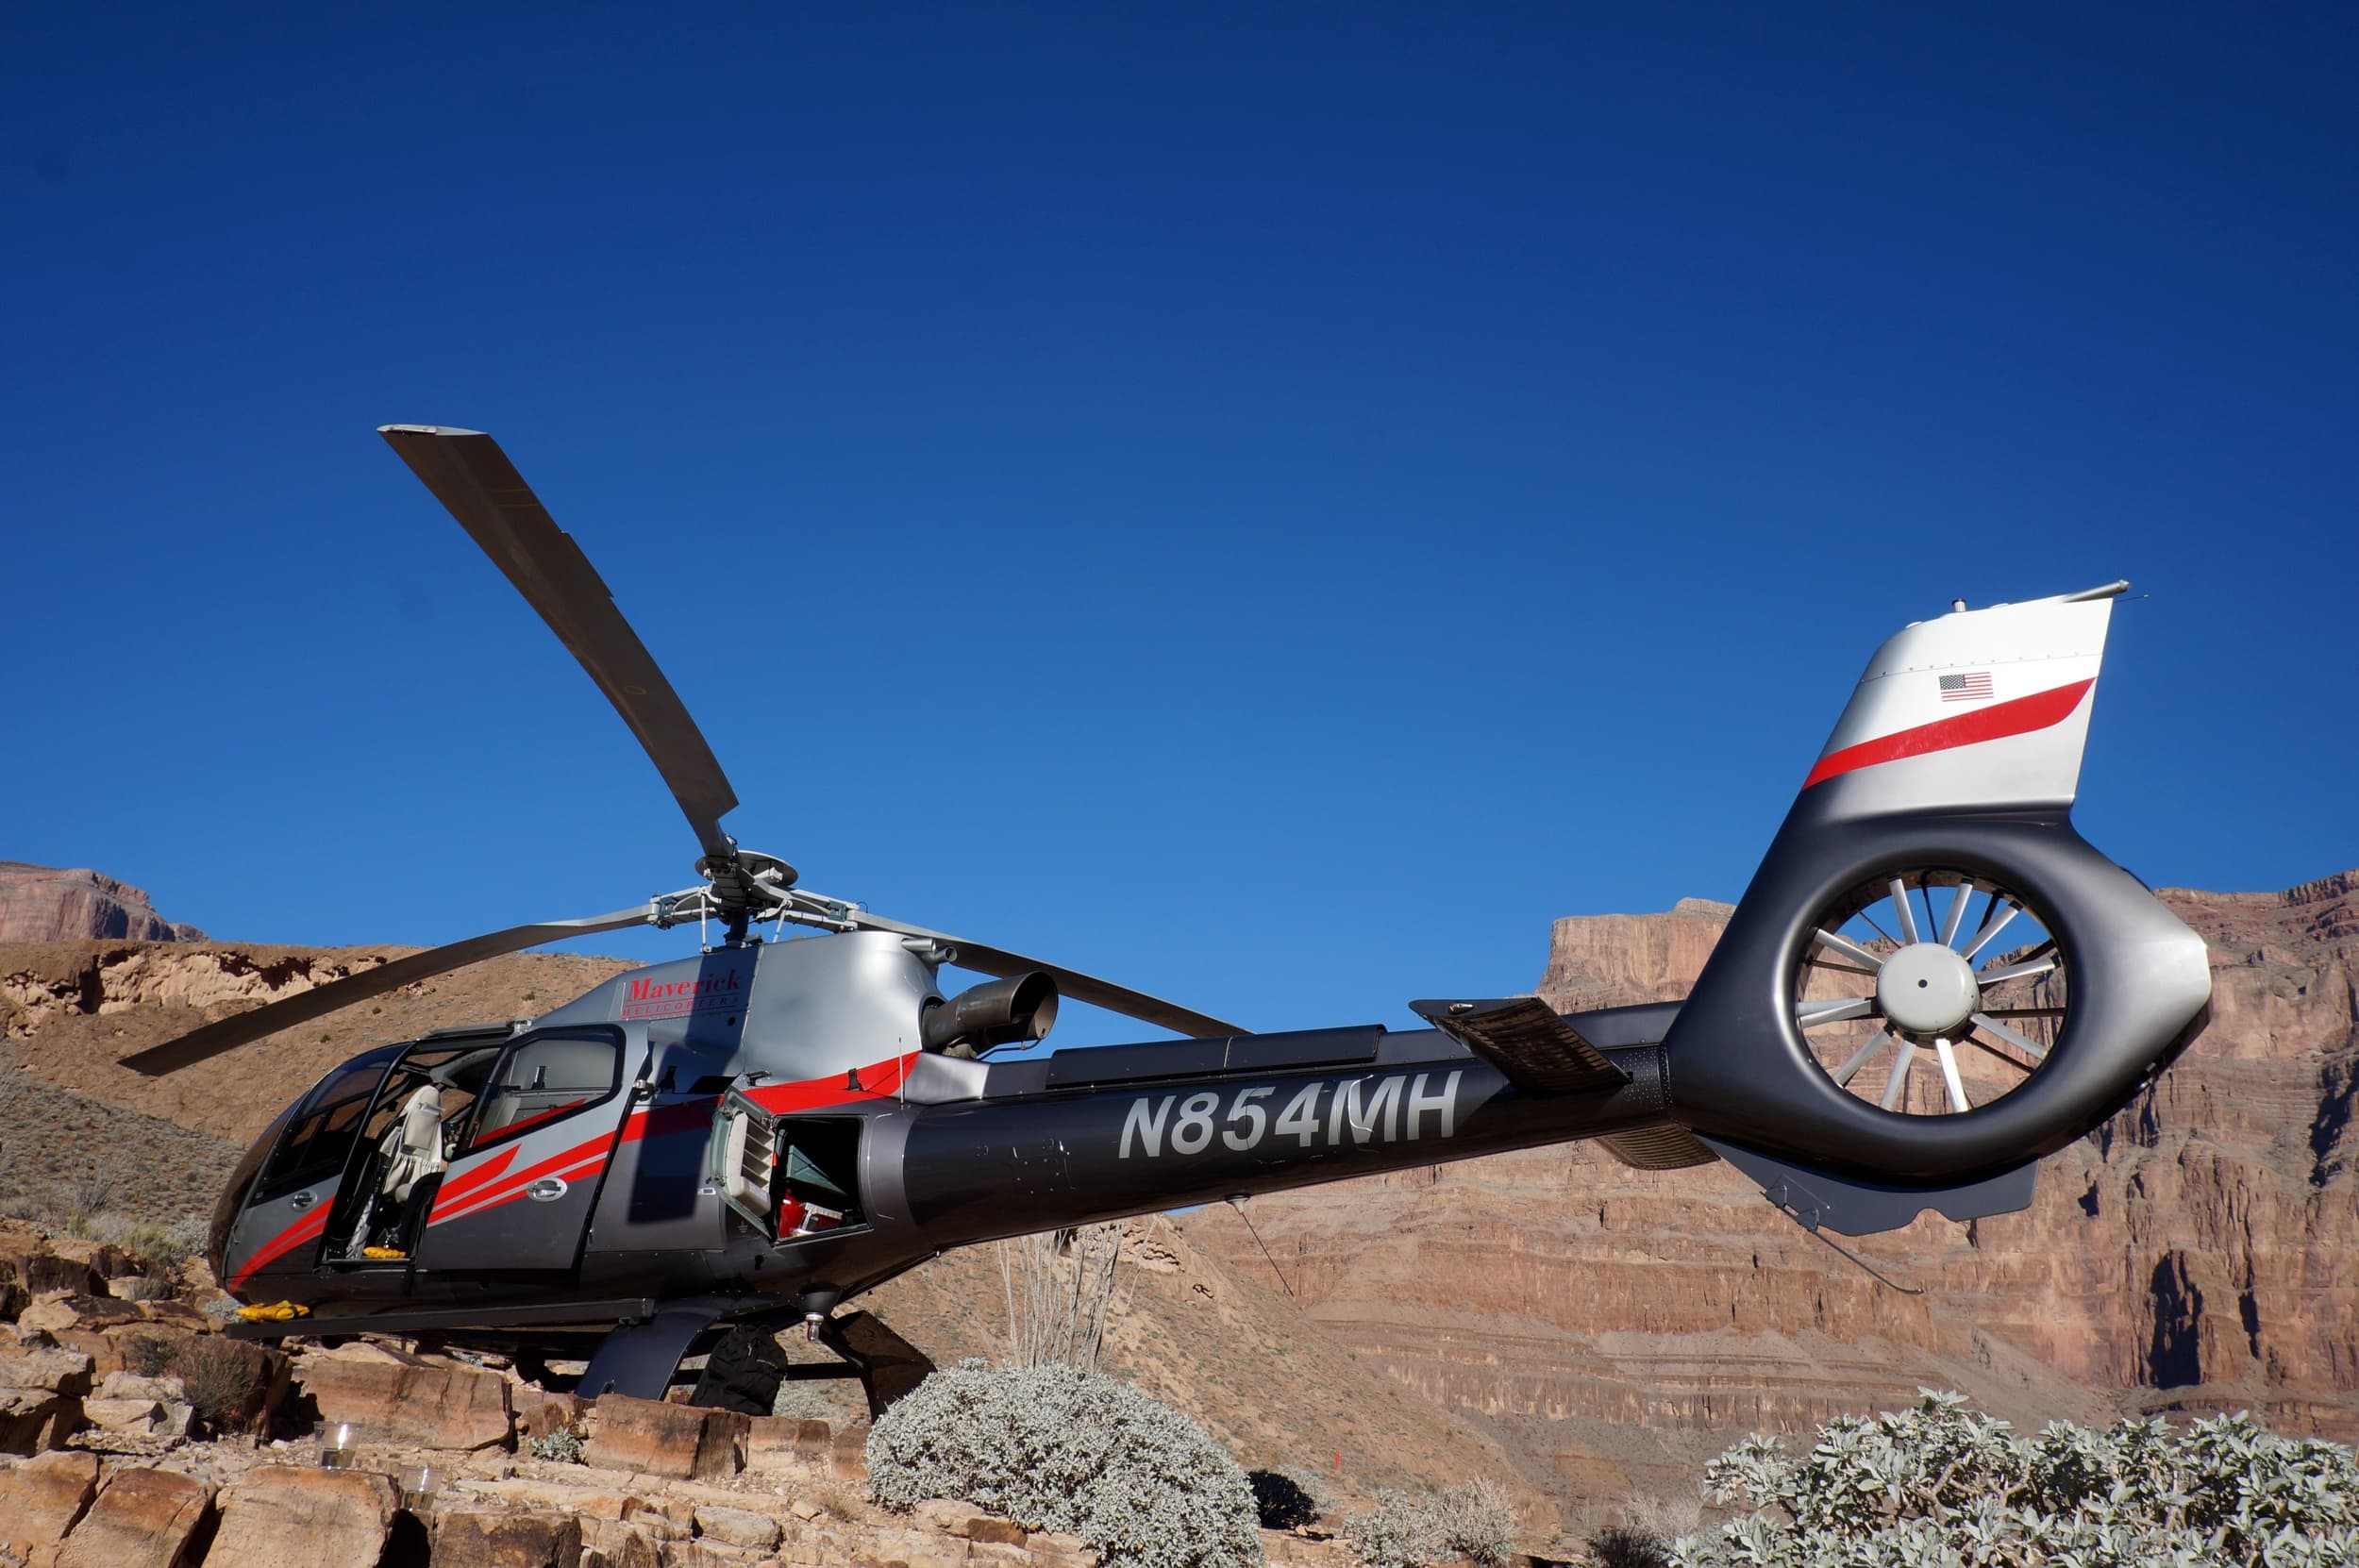 A tour with Maverick Helicopters